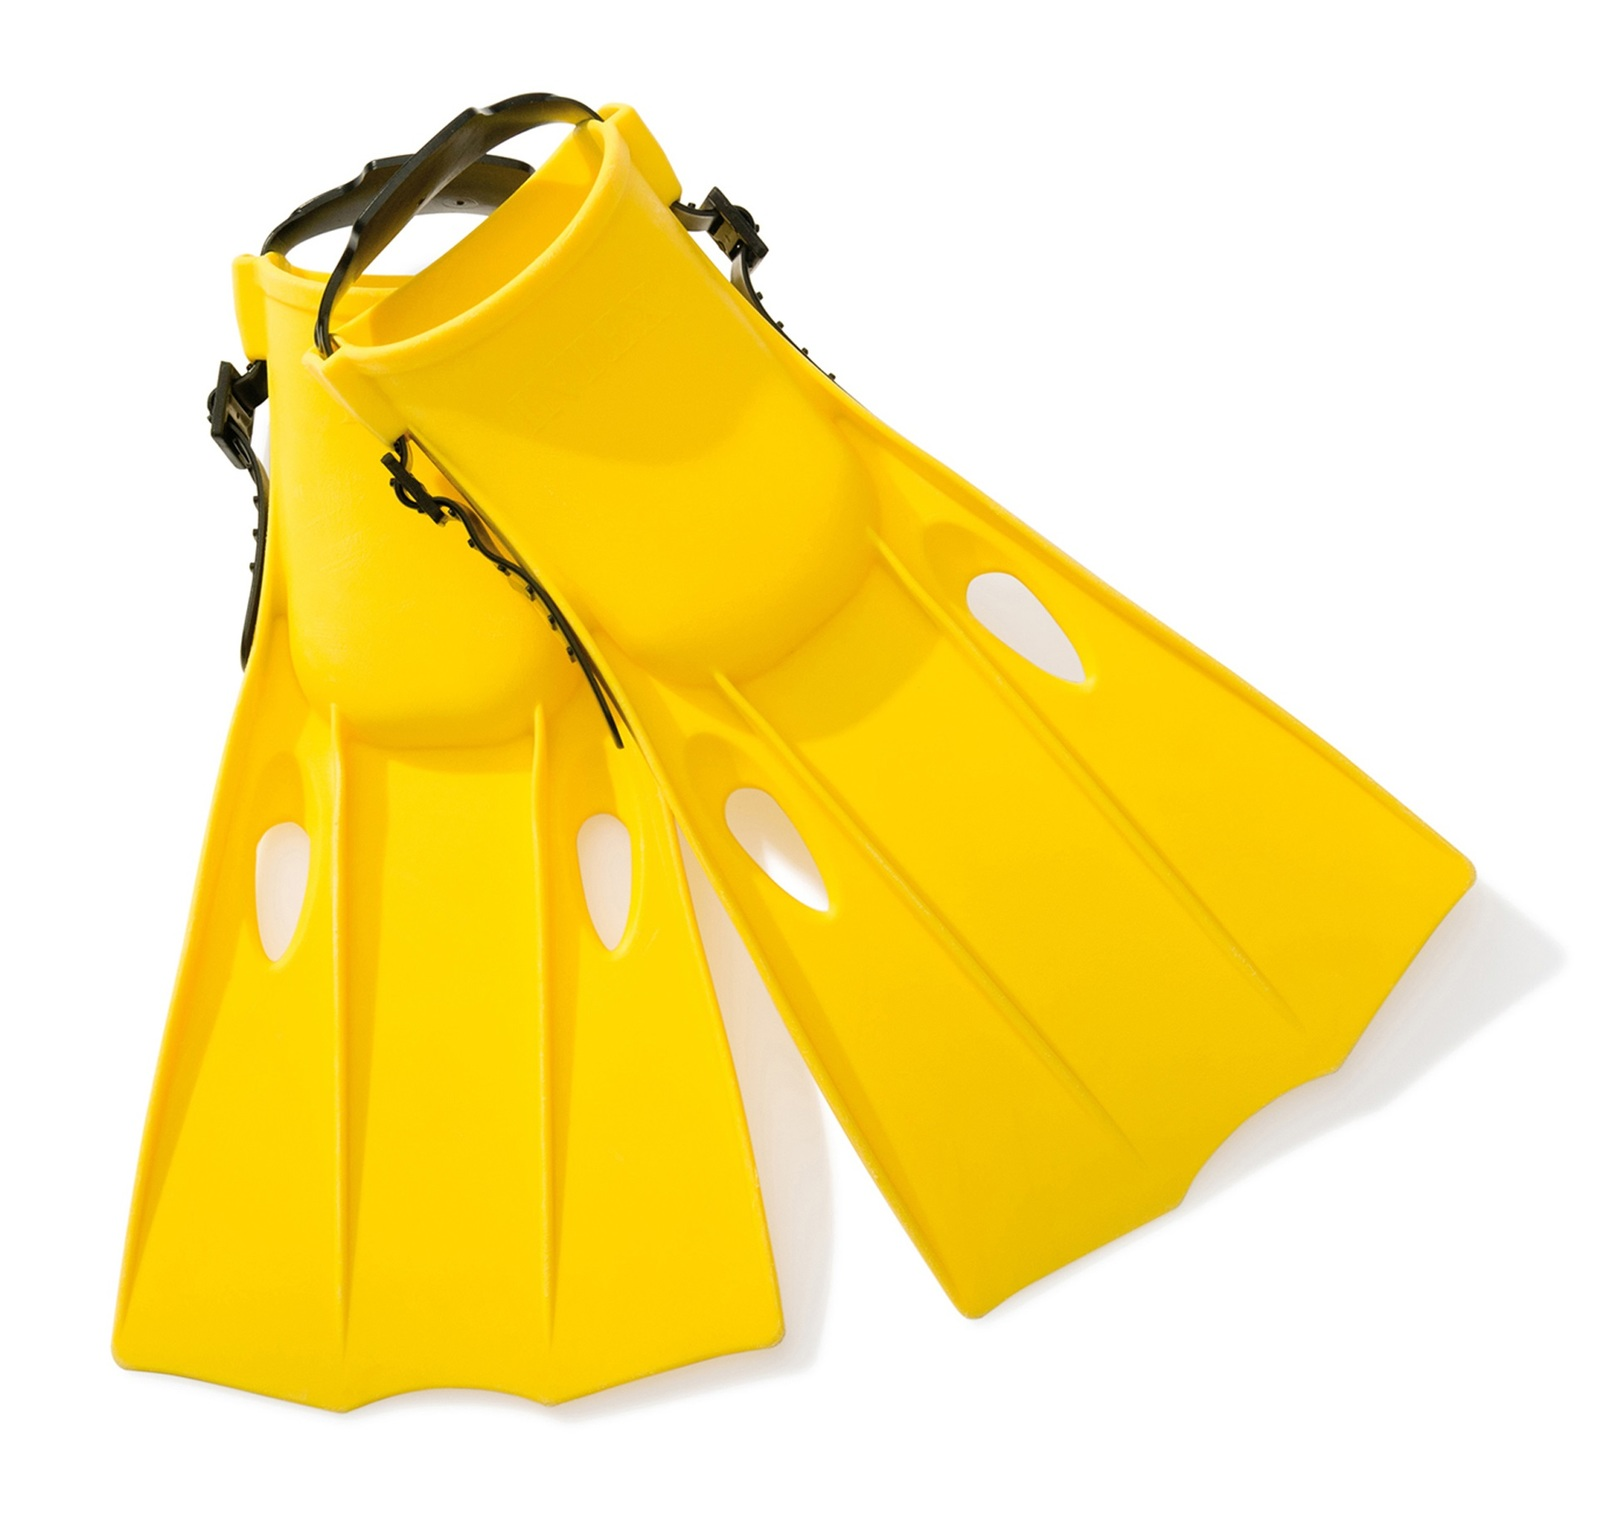 Intex: Swim Fins - Small (Yellow) image